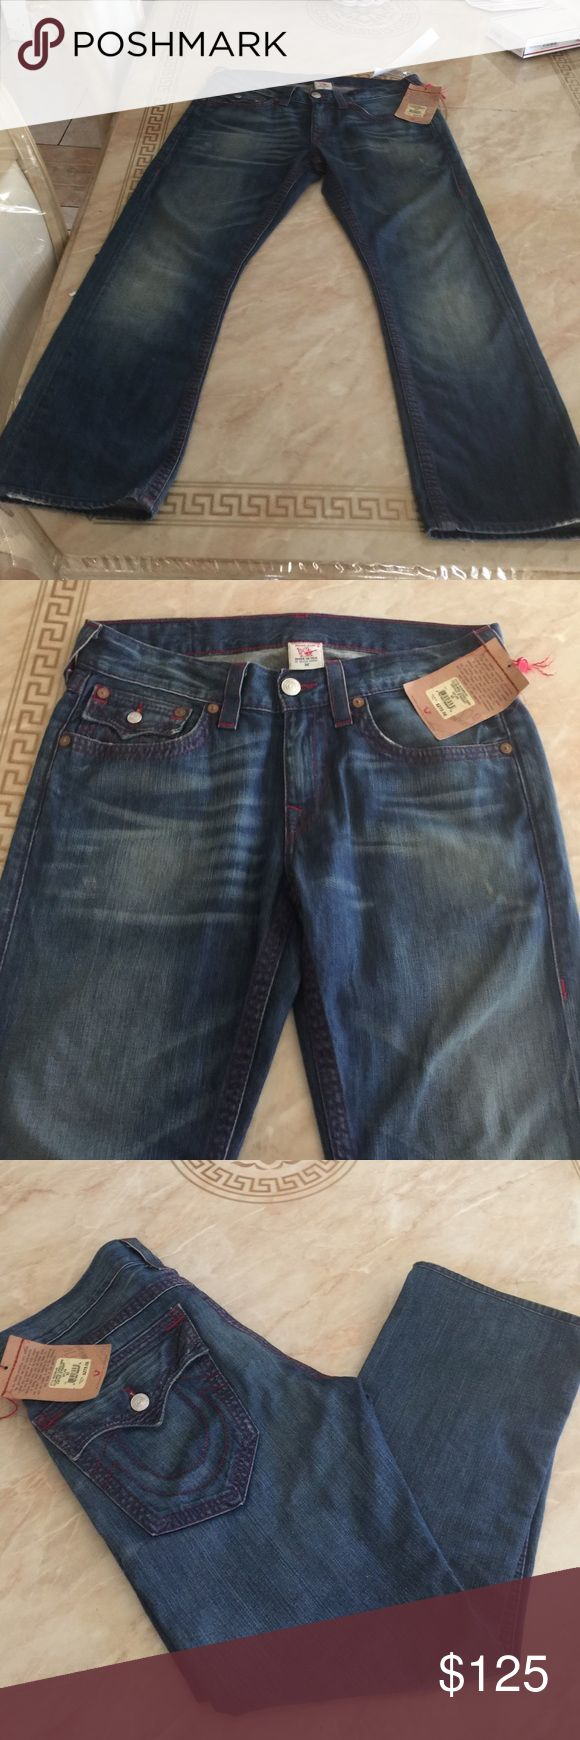 TRUE  RELIGIÓN STRAIGHT Very nice Jeans 👖Size 32 inseam 28 Reasonable offers welcome True Religion Jeans Straight